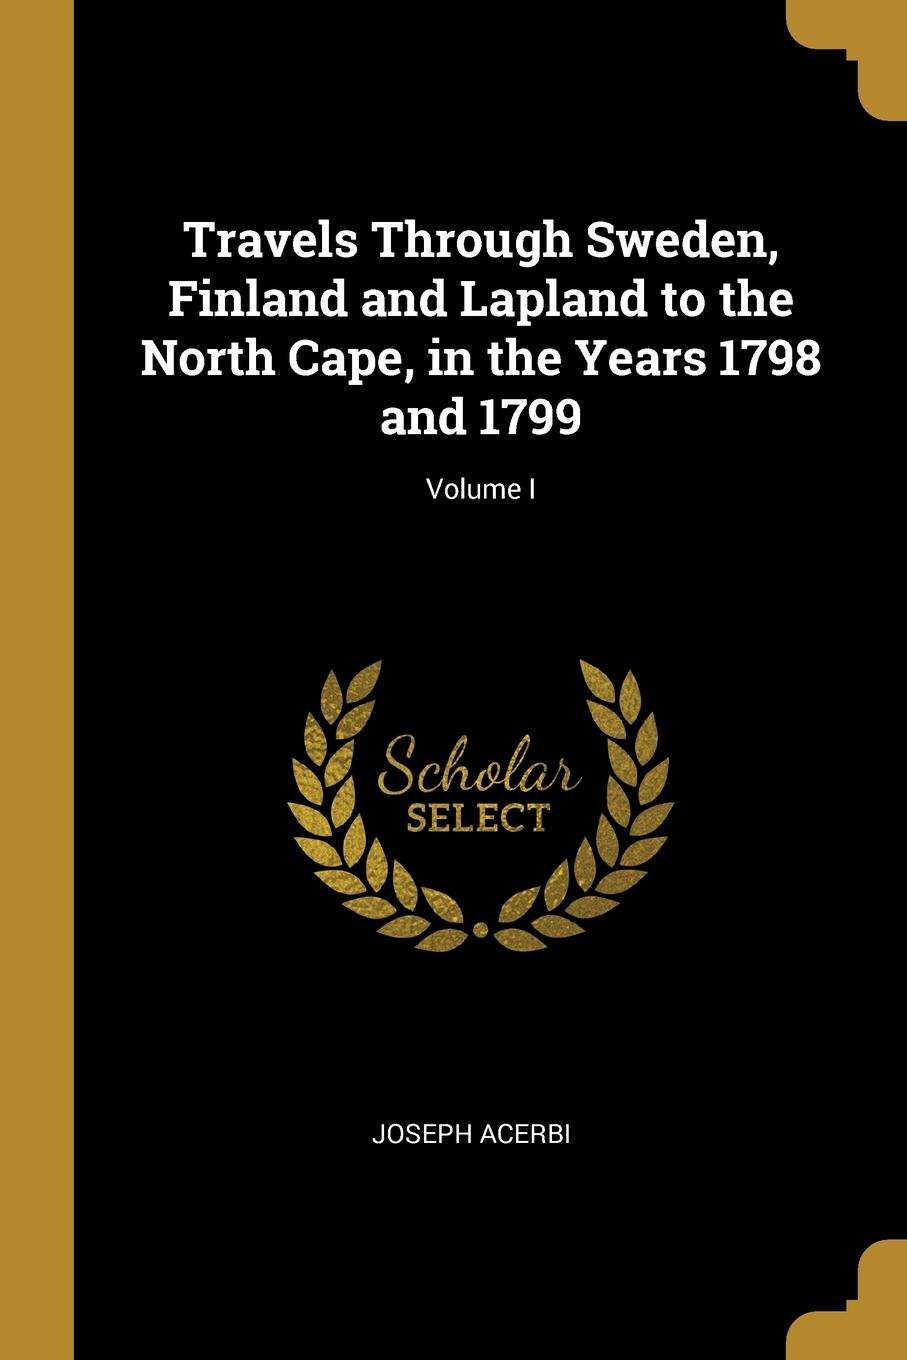 Joseph Acerbi Travels Through Sweden, Finland and Lapland to the North Cape, in the Years 1798 and 1799; Volume I joseph acerbi travels through sweden finland and lapland to the north cape vol 1